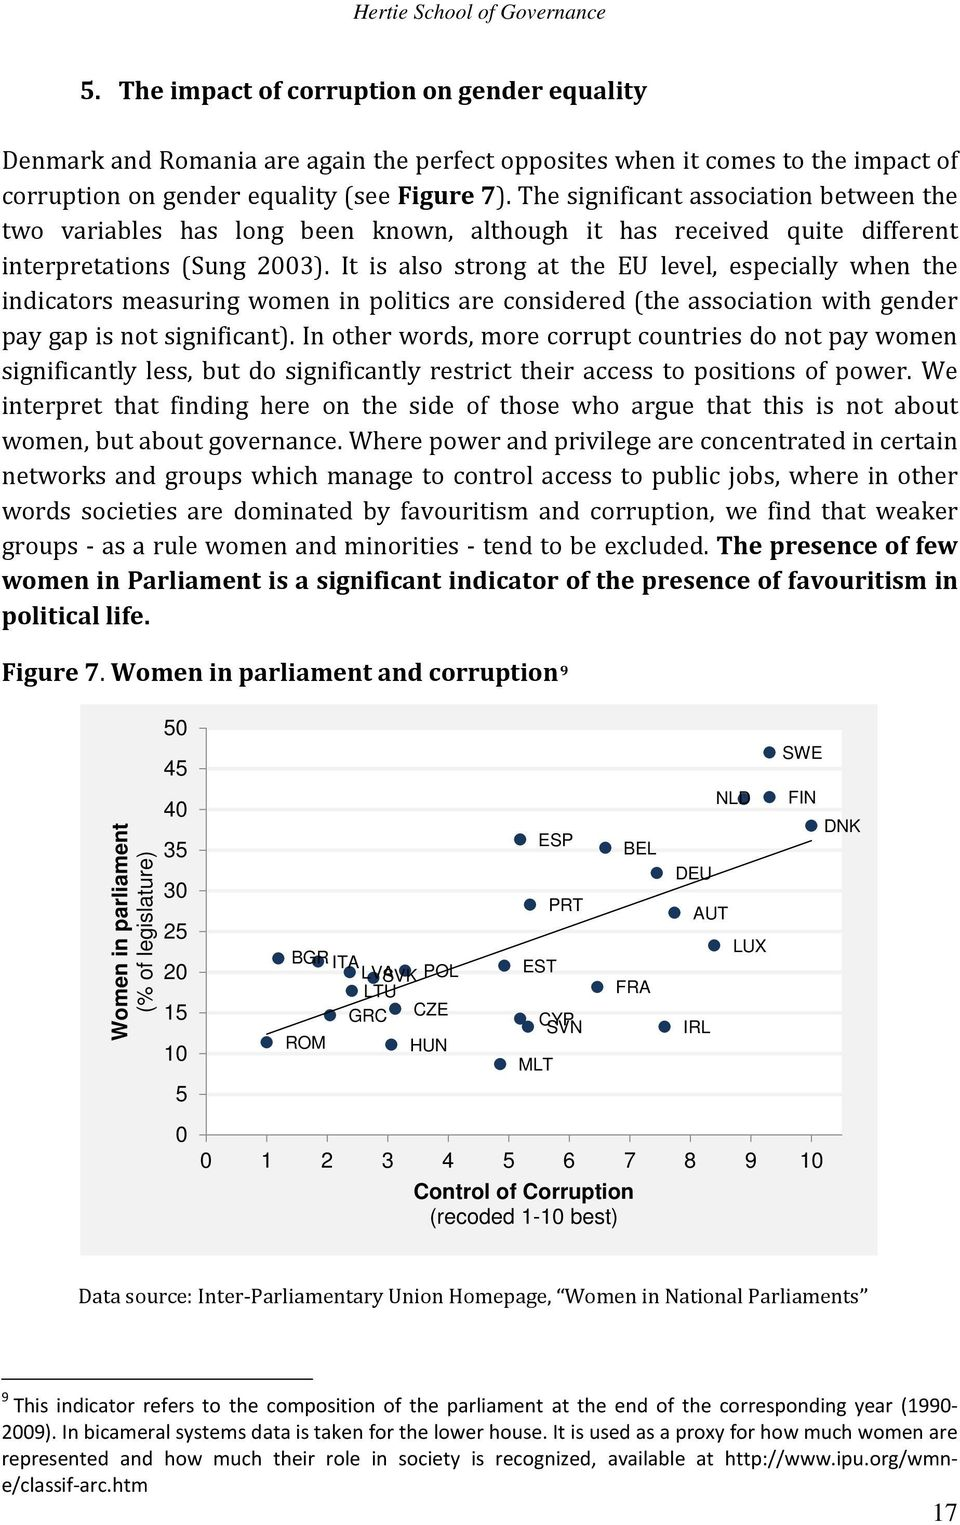 It is also strong at the EU level, especially when the indicators measuring women in politics are considered (the association with gender pay gap is not significant).